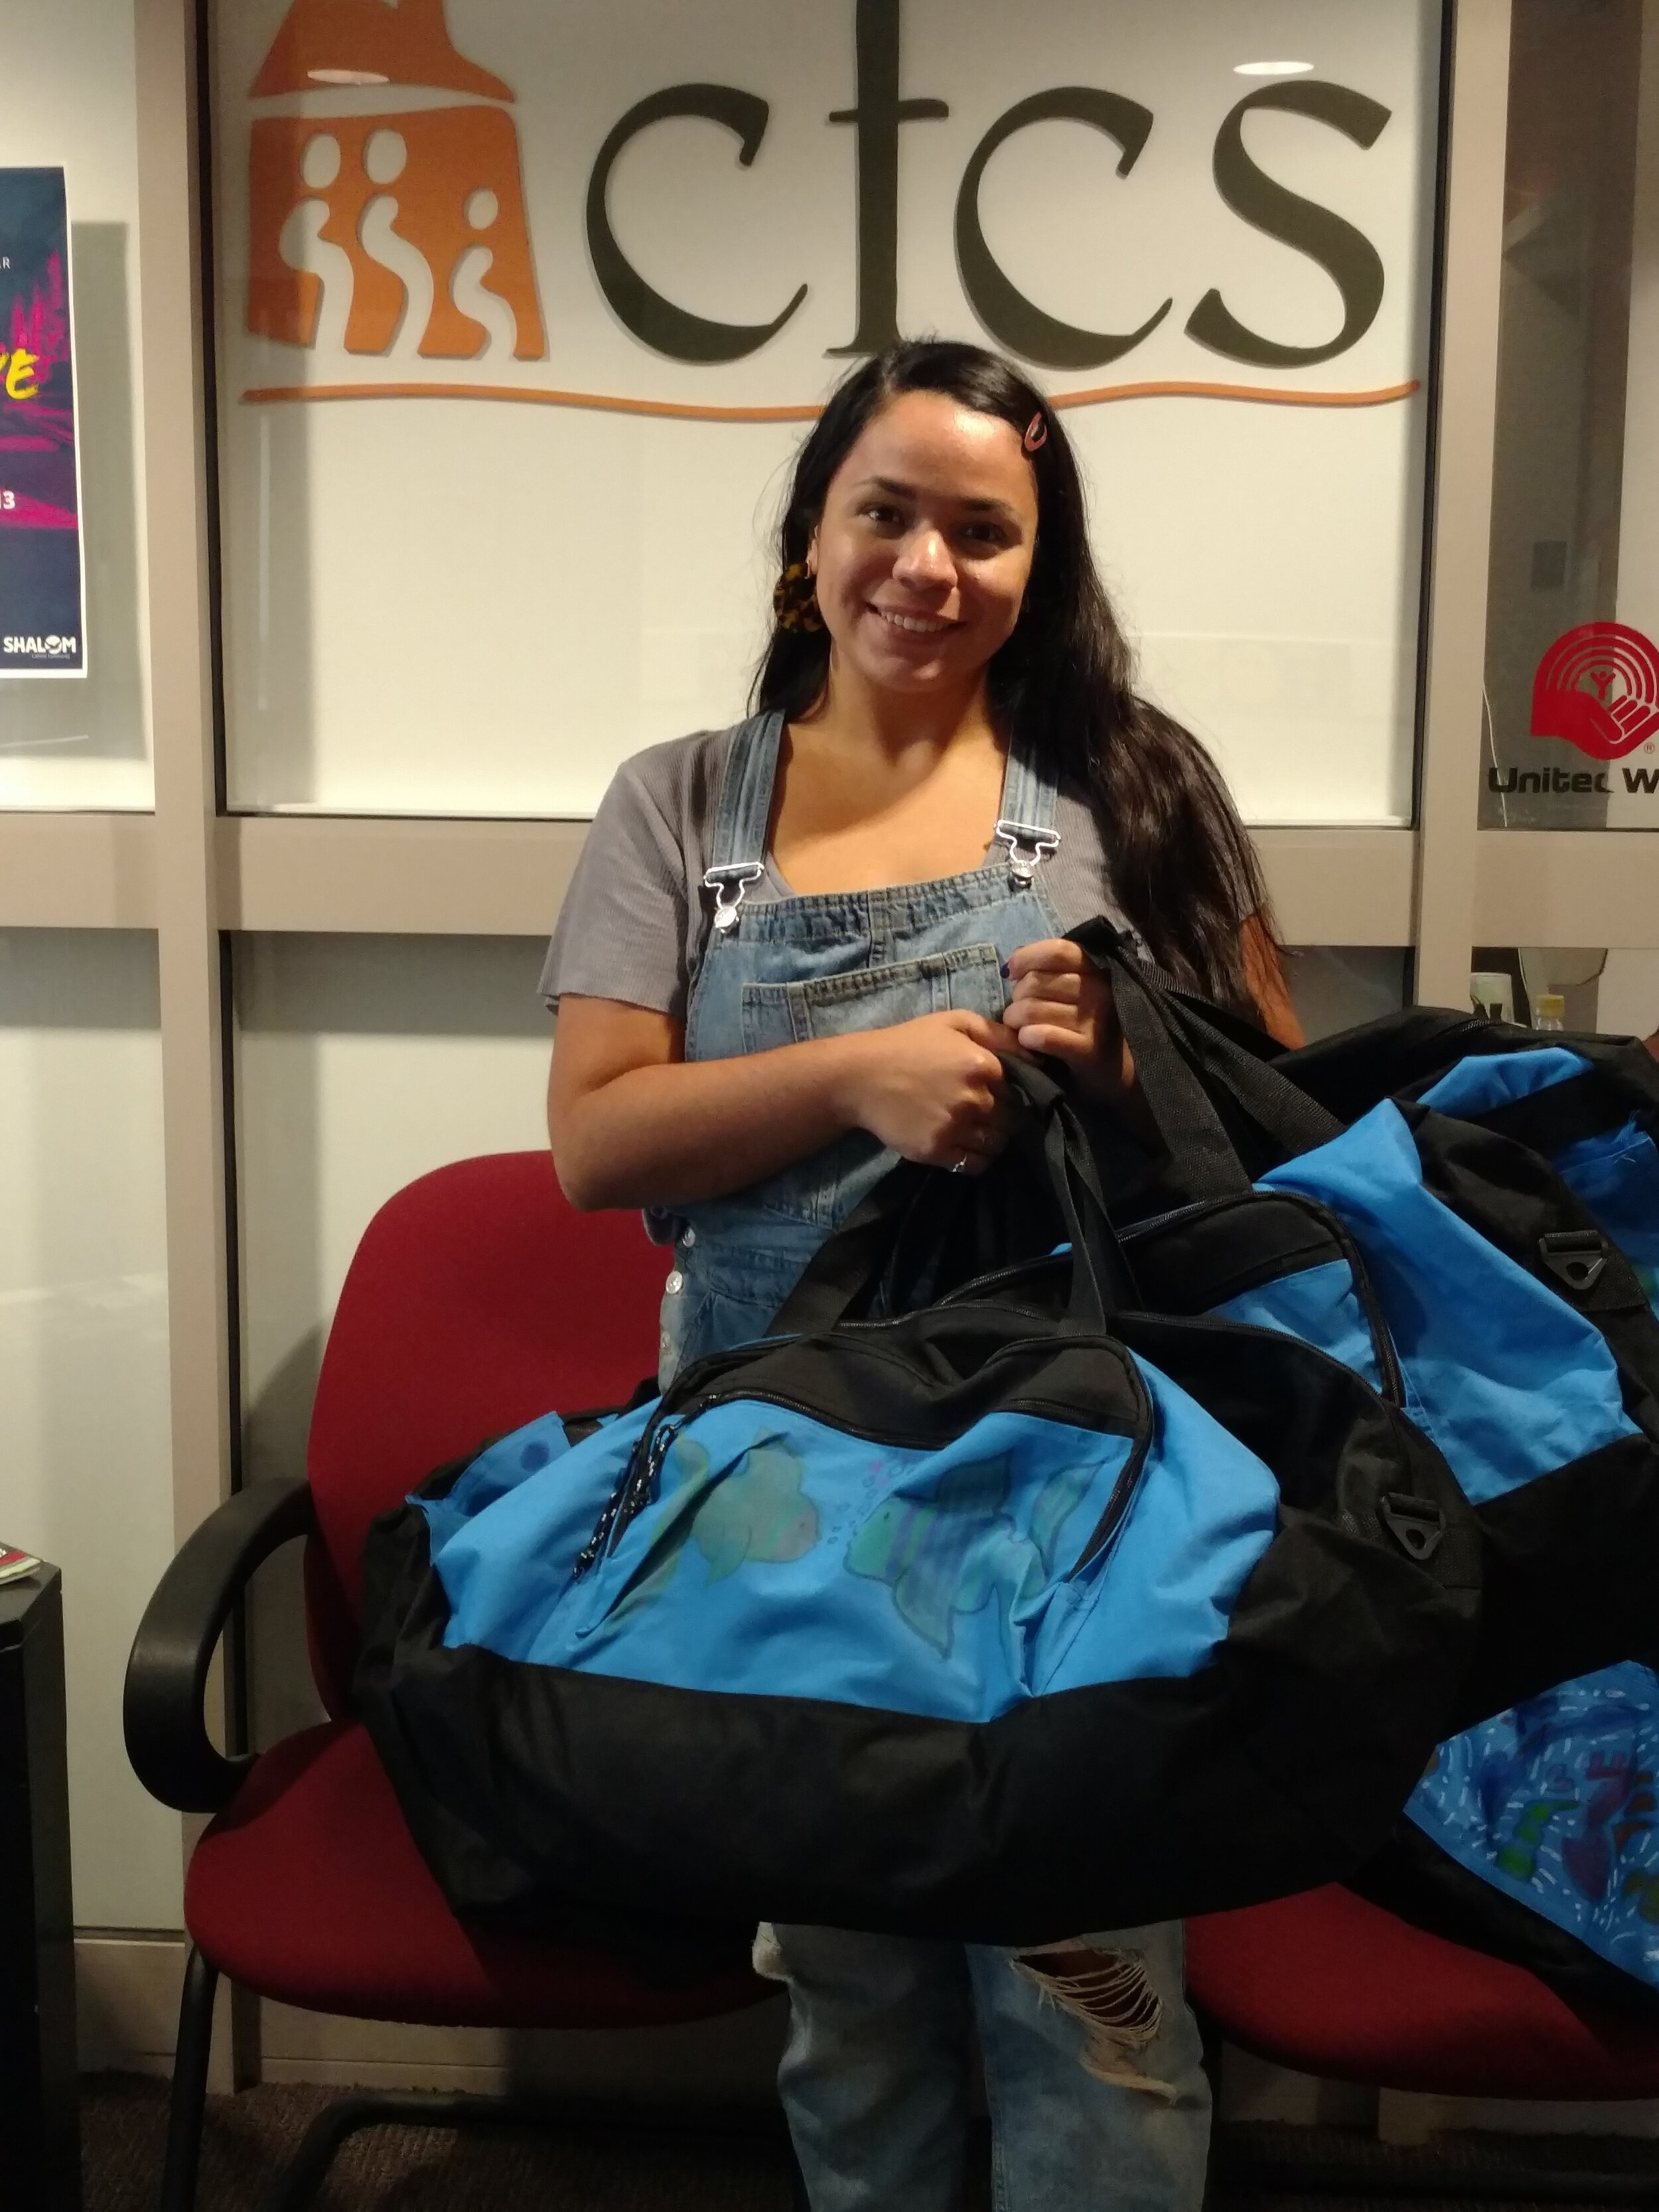 Family Support & Stabilization Coordinator Andrea Ruiz, picking up Sweet Cases for families